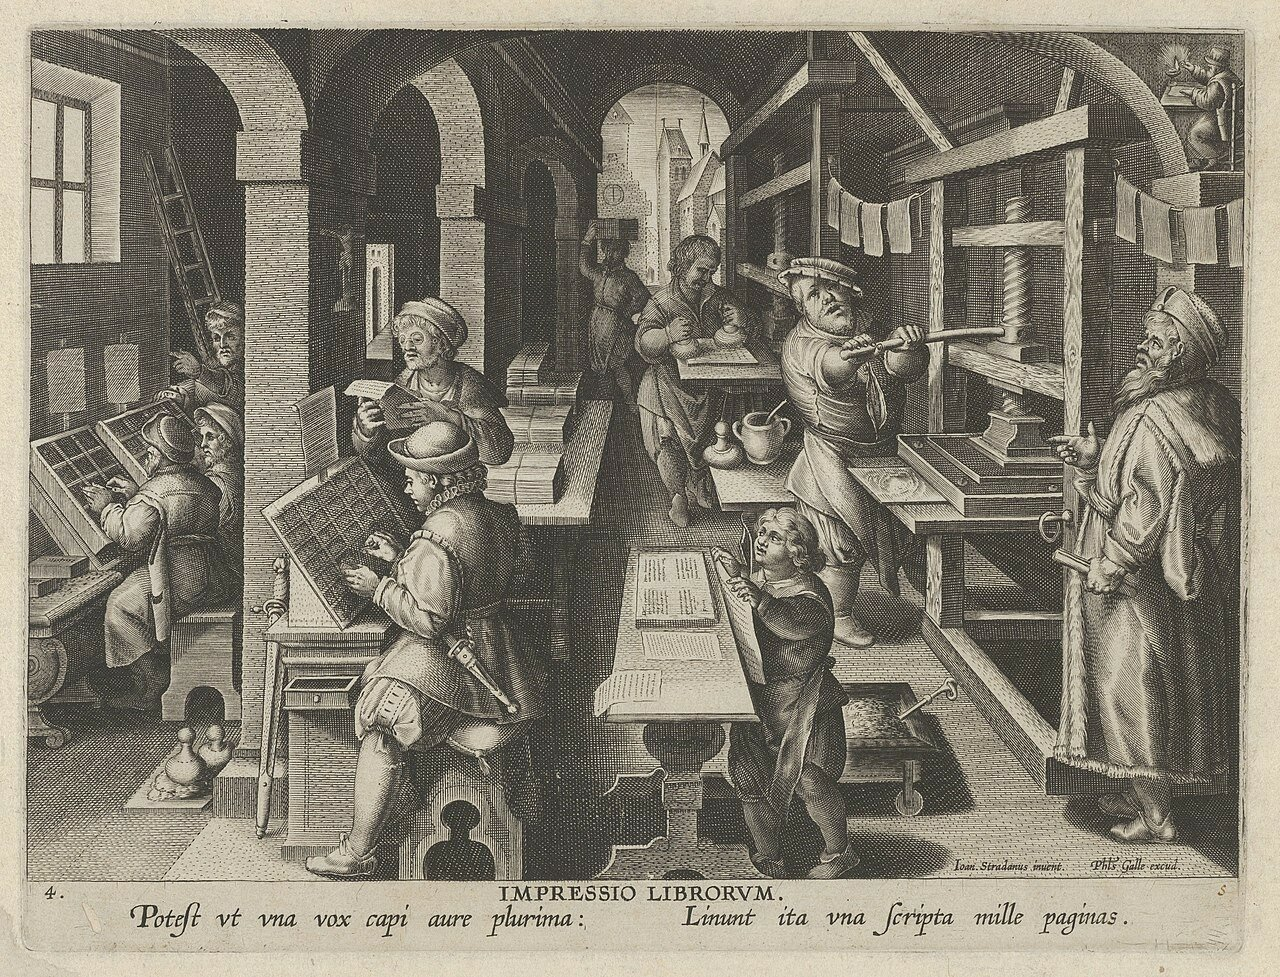 1280px-New_Inventions_of_Modern_Times_-Nova_Reperta-,_The_Invention_of_Book_Printing,_plate_4_MET_DP841130.jpg